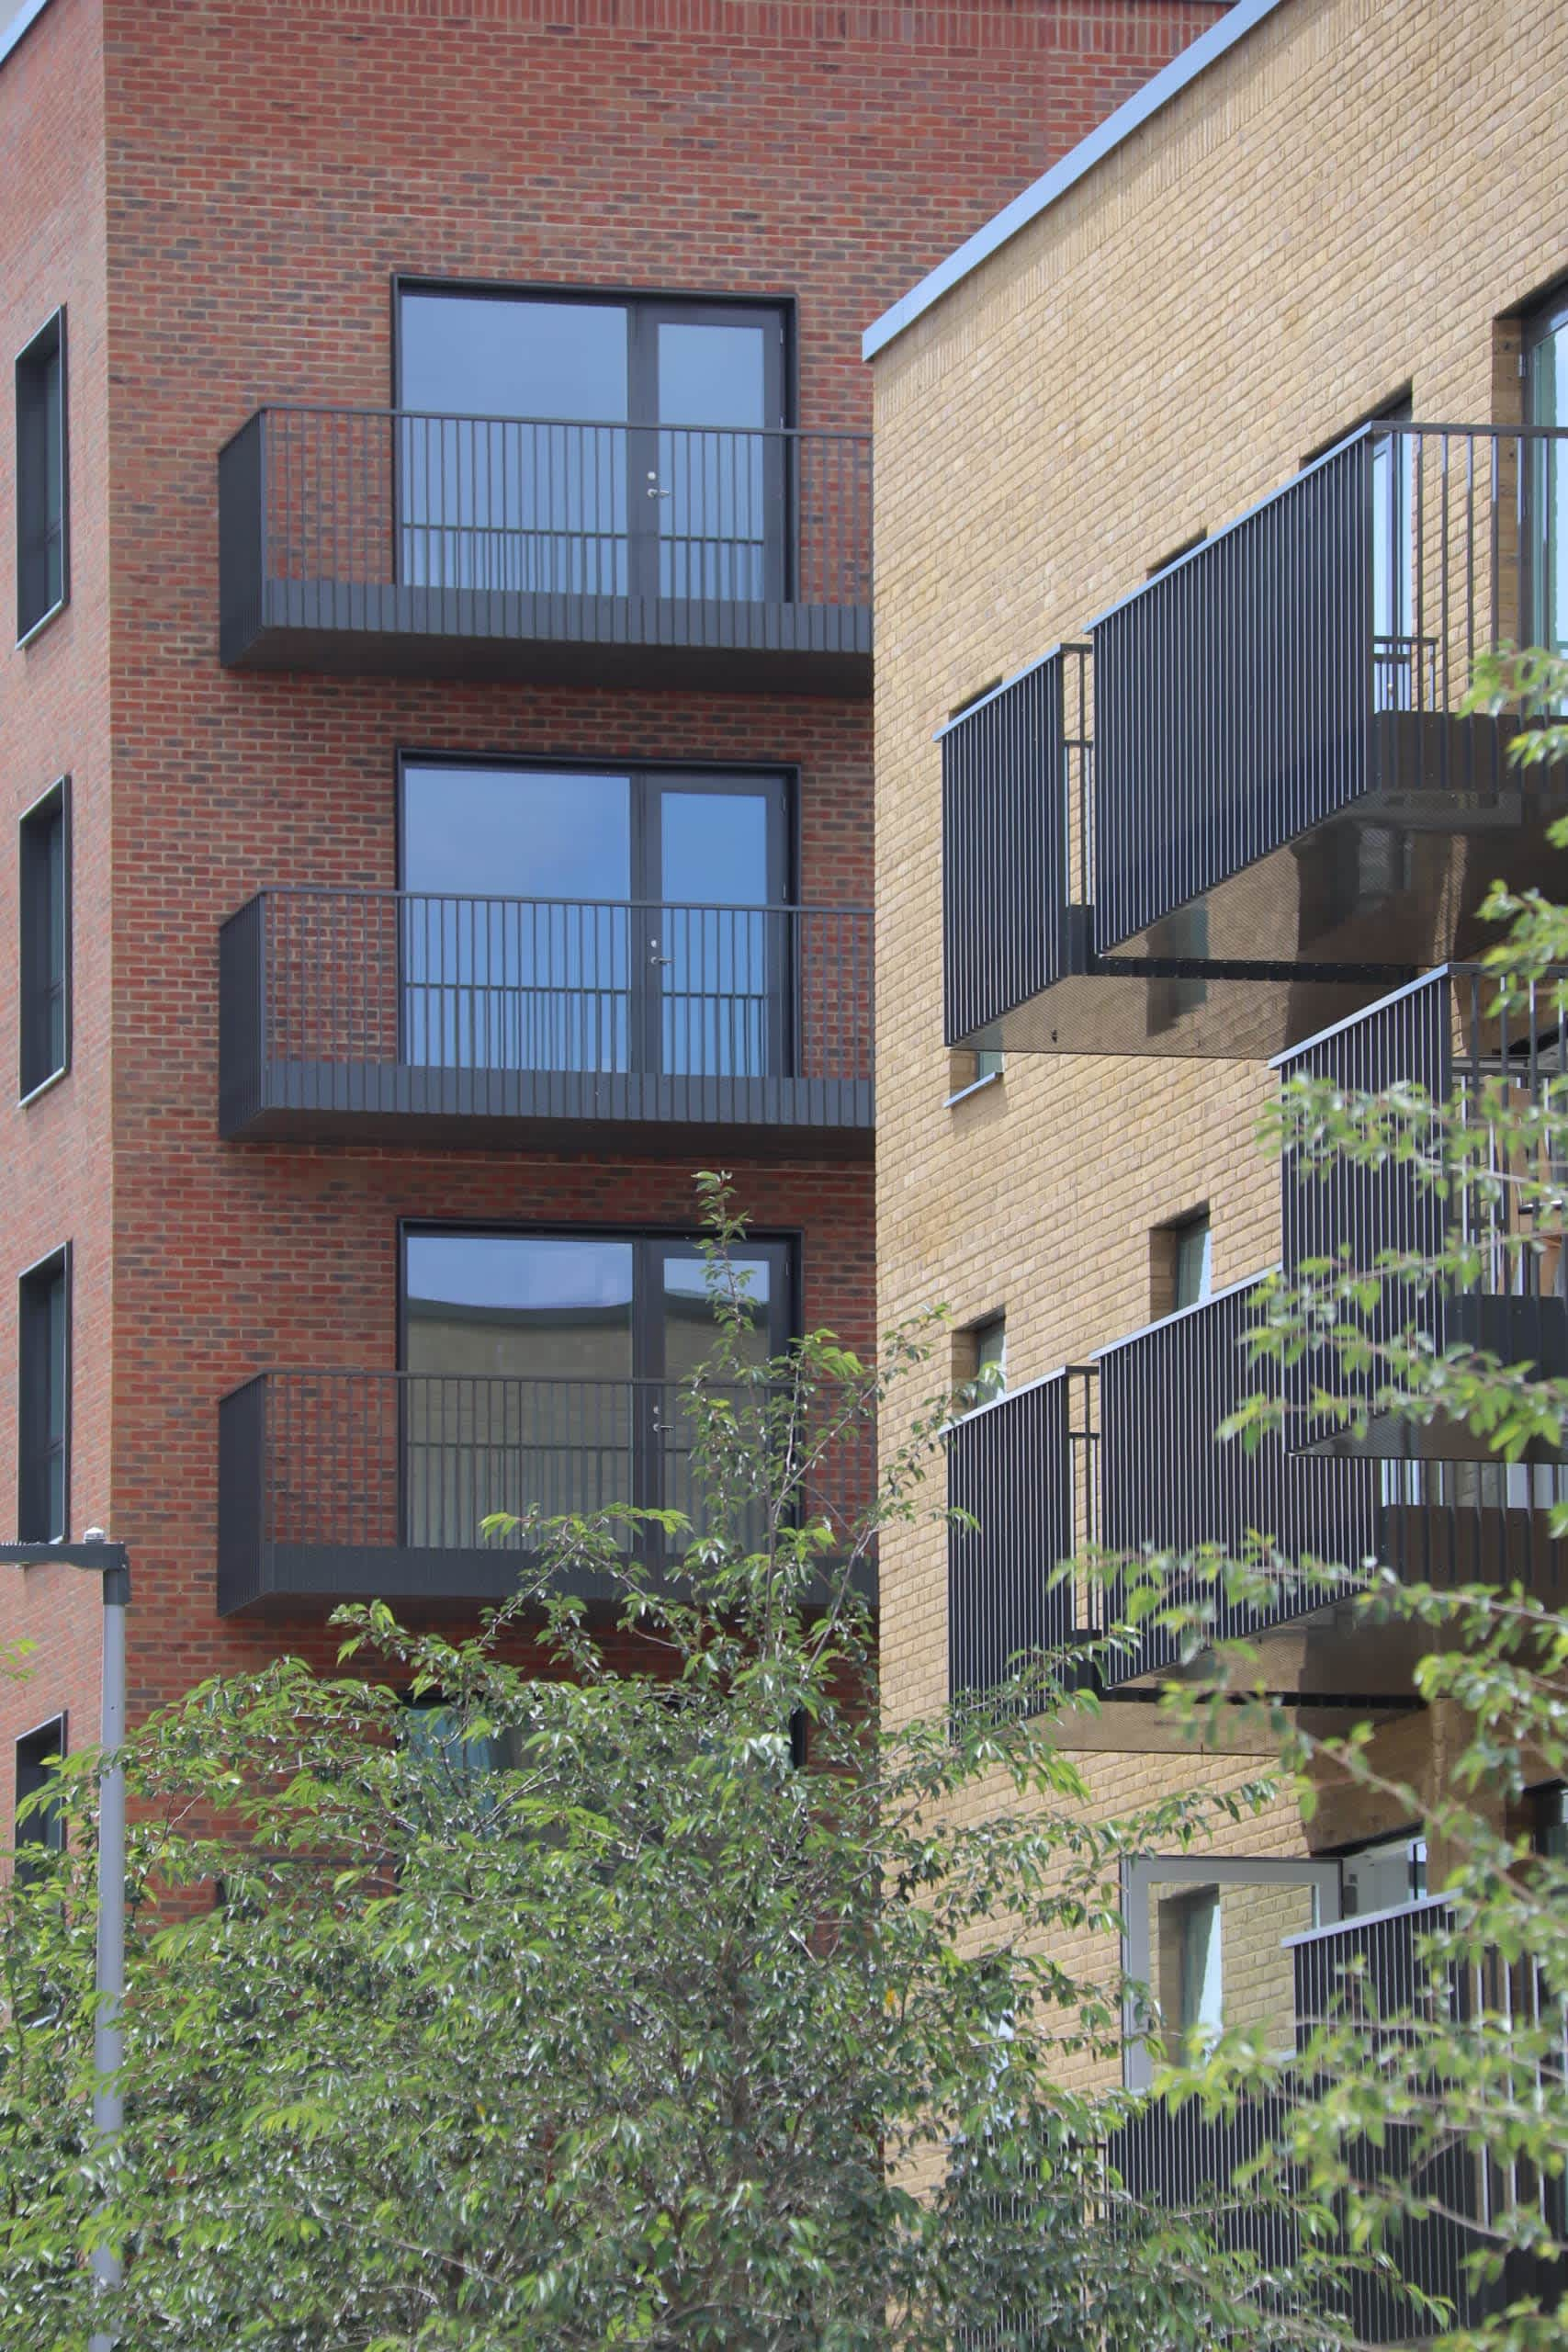 Southall Waterside Phase A